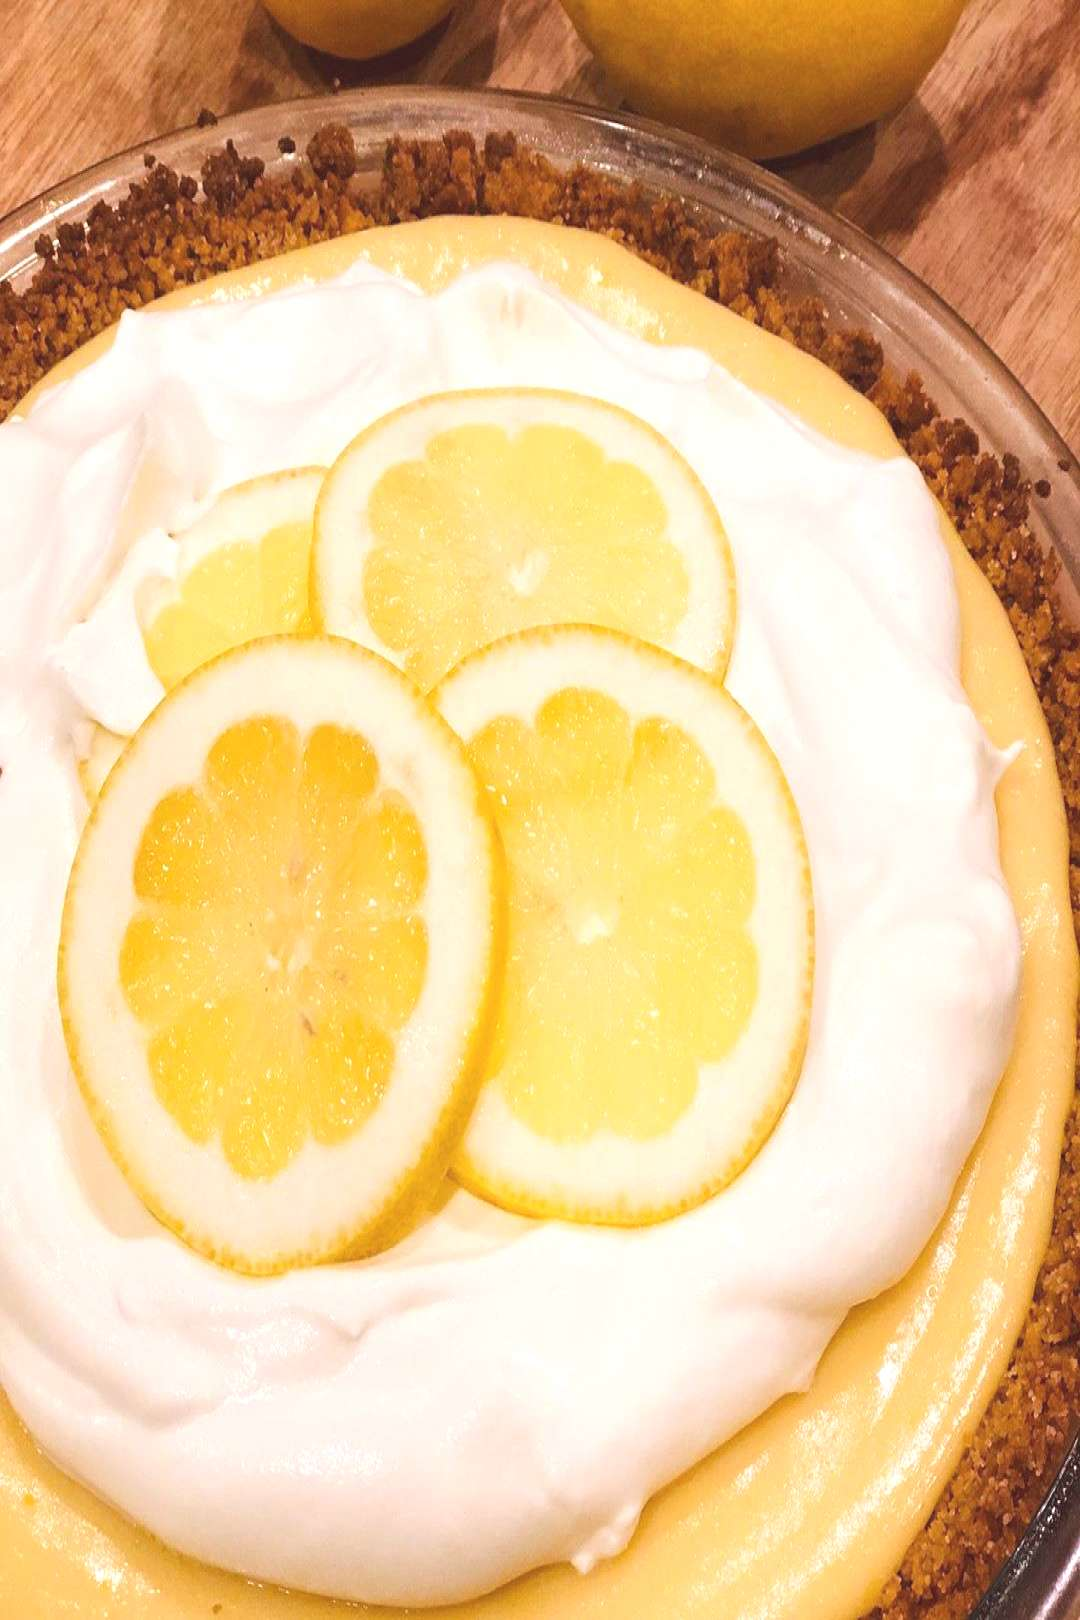 Last night I made Lemon Pie from the cookbook and it is DELICIOUS